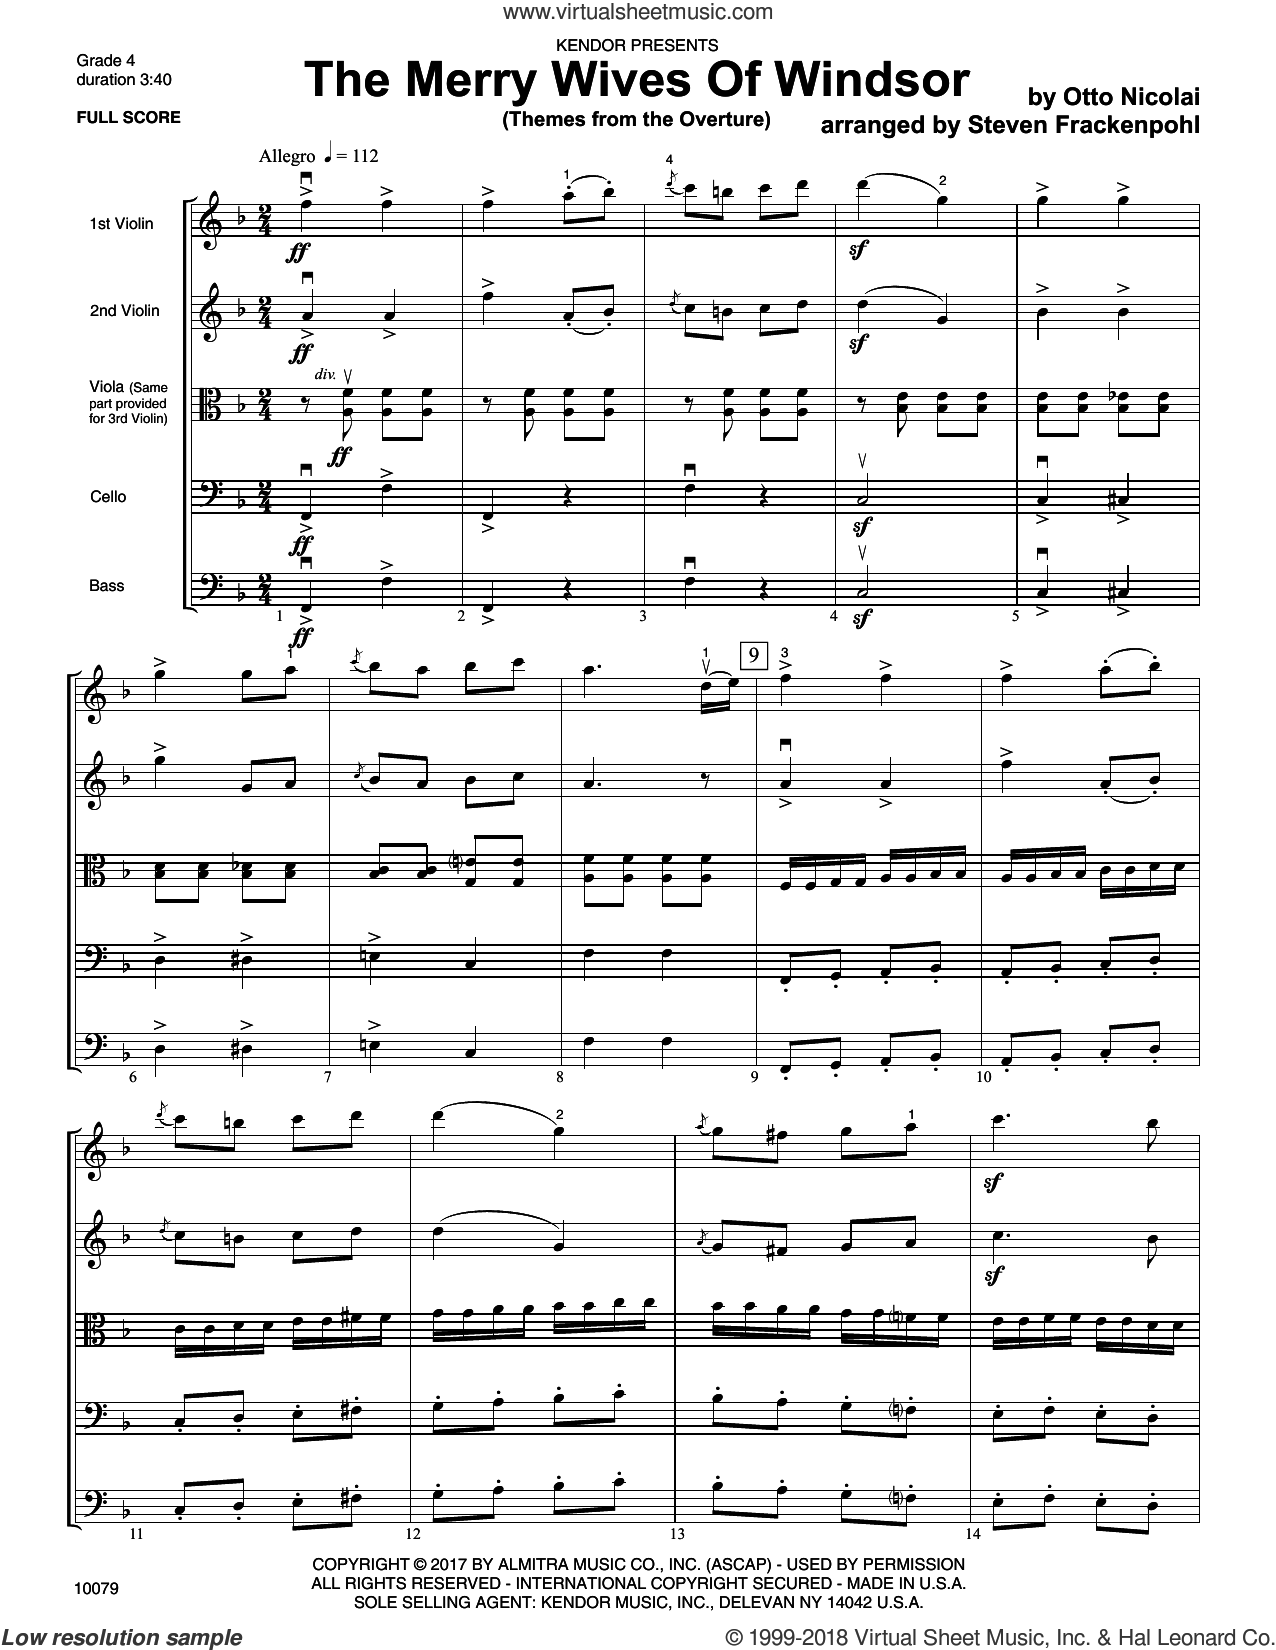 The Merry Wives Of Windsor (Themes From The Overture) (COMPLETE) sheet music for orchestra by Steve Frackenpohl and Otto Nicolai, intermediate skill level